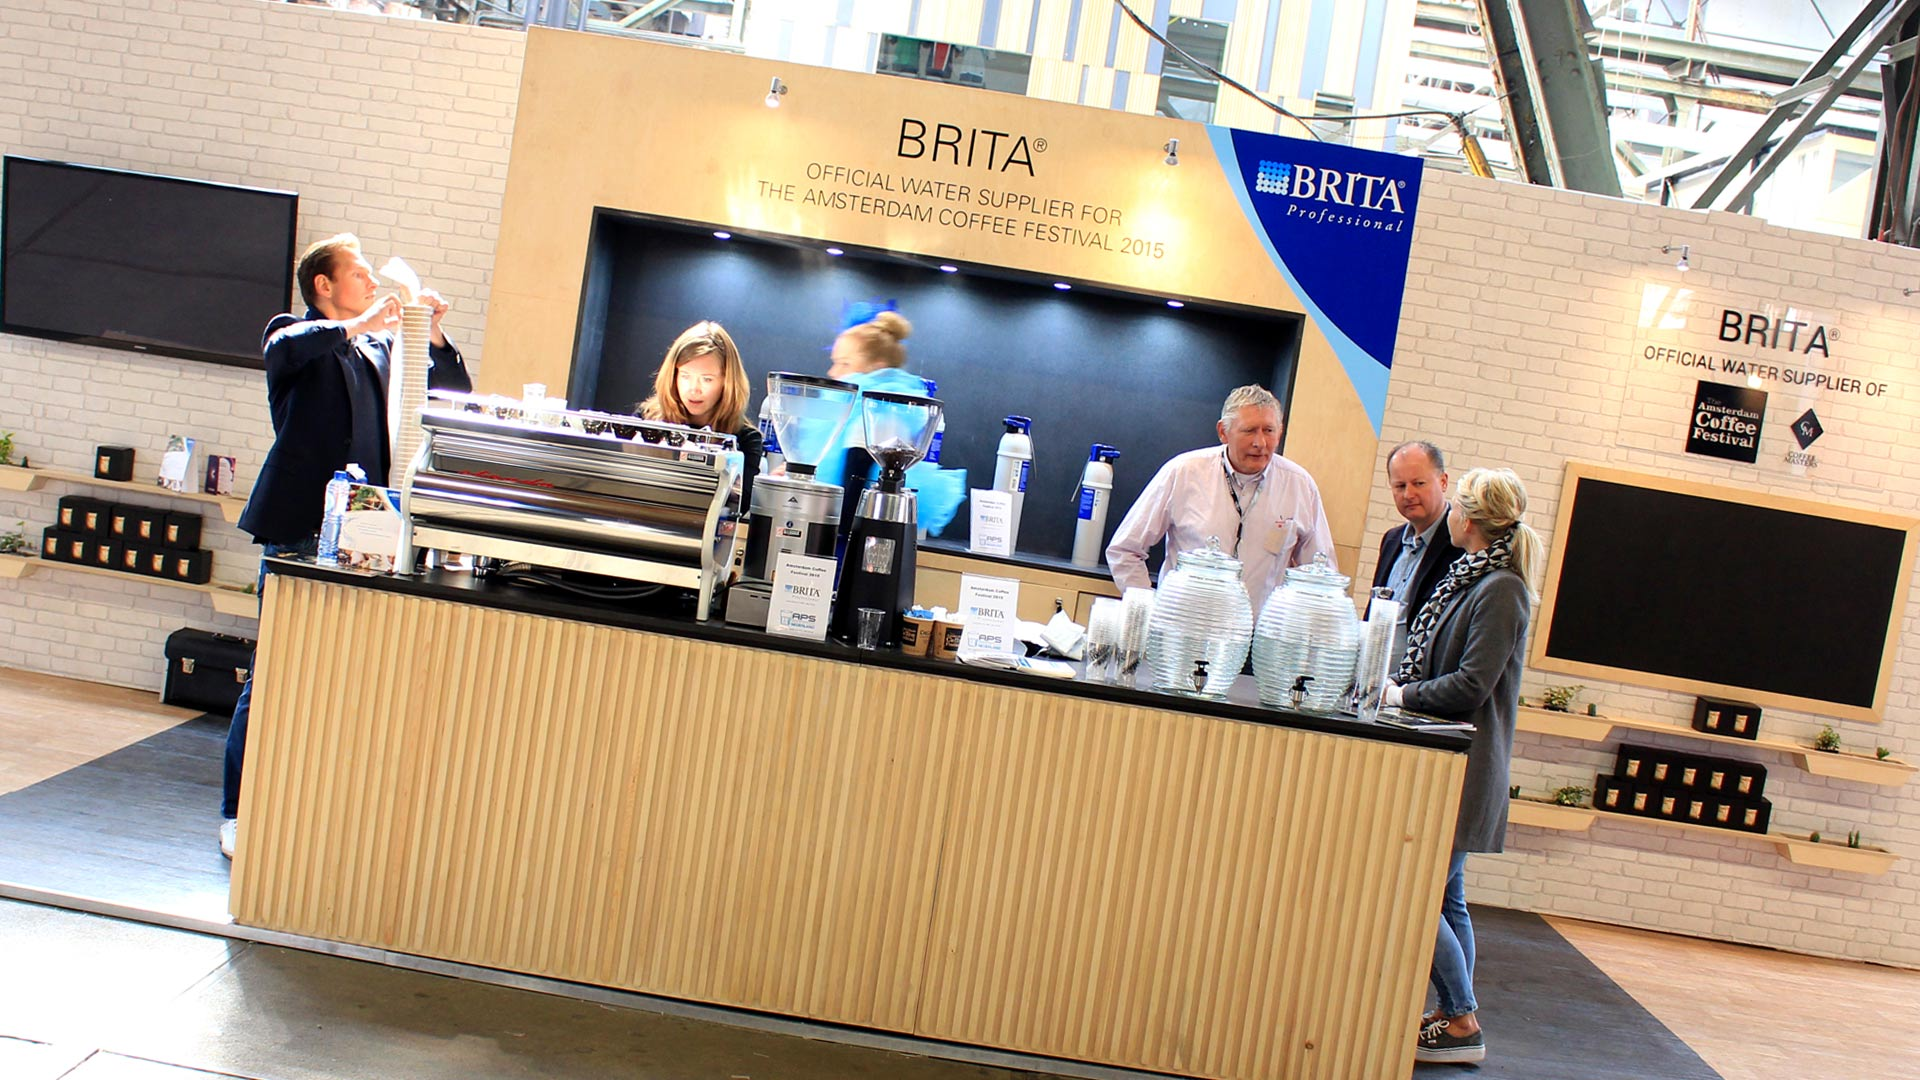 Exhibition Stand Coffee : Brita trade stand liqui design consultants london coffee